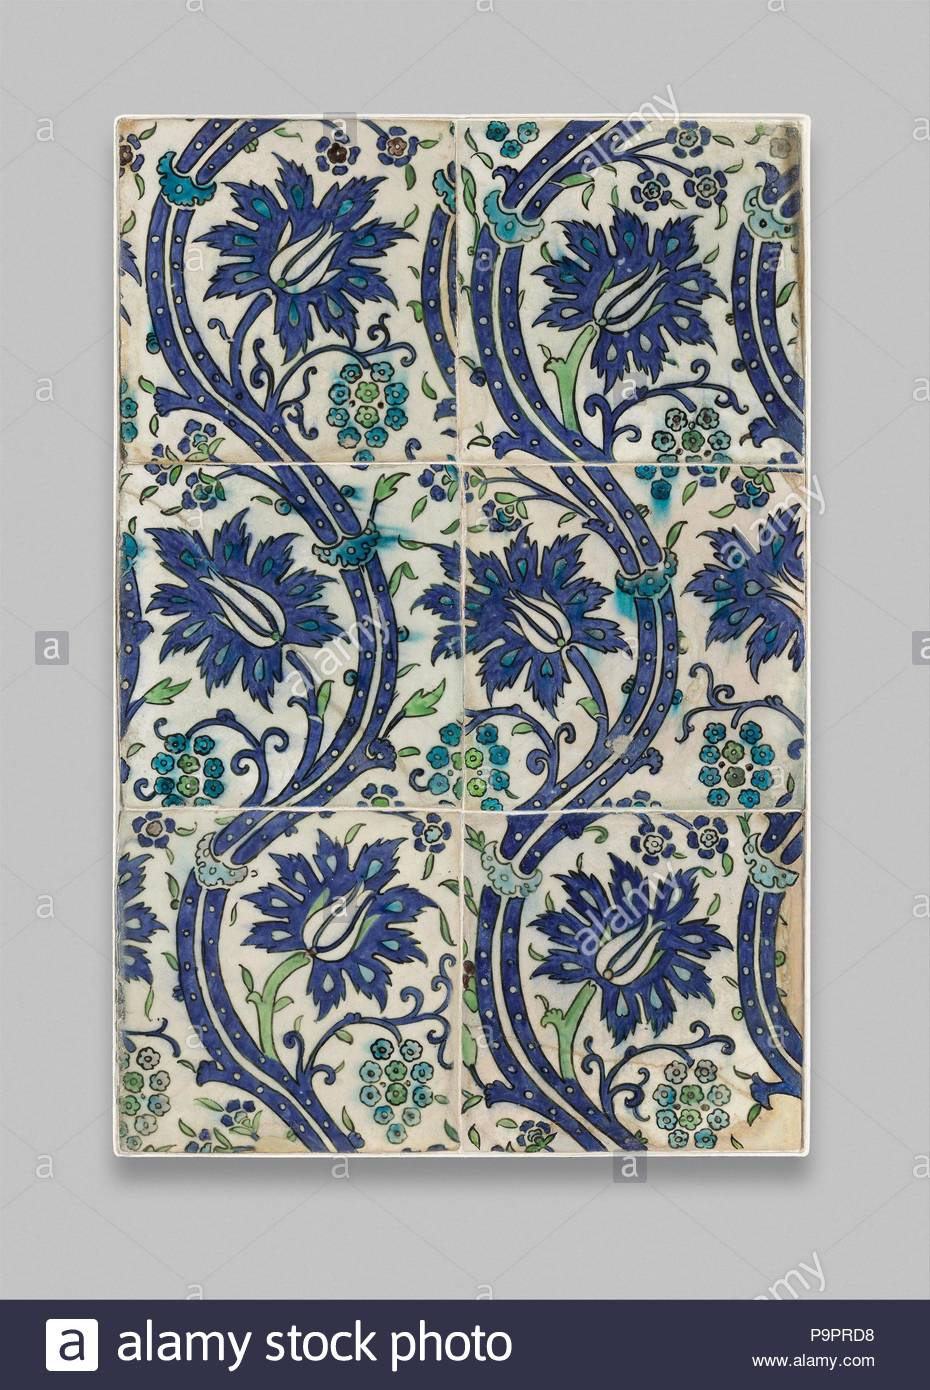 Tile Panel With Wavy Vine Design 16th17th Century Probably Made